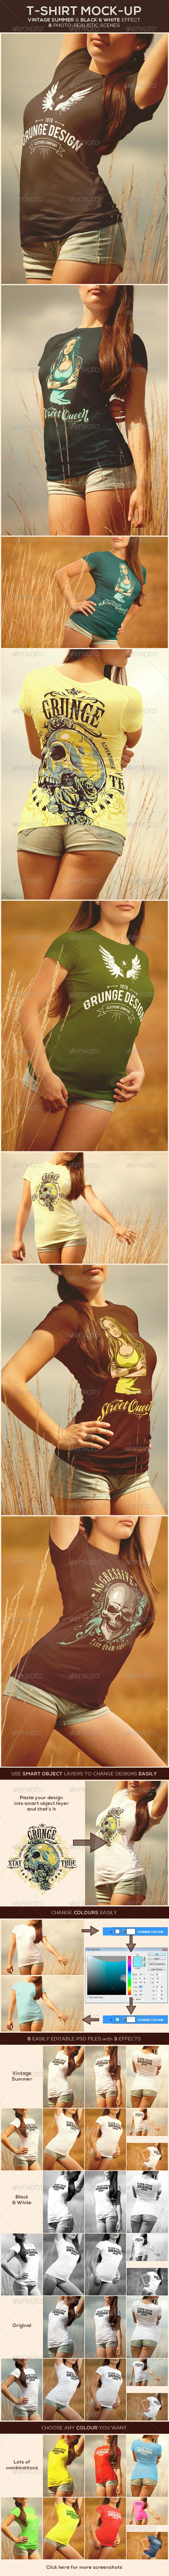 T-Shirt Mock-Up | #tshirtmockup #t-shirtmockup #mockups | Download: http://graphicriver.net/item/tshirt-mockup/8753129?ref=ksioks